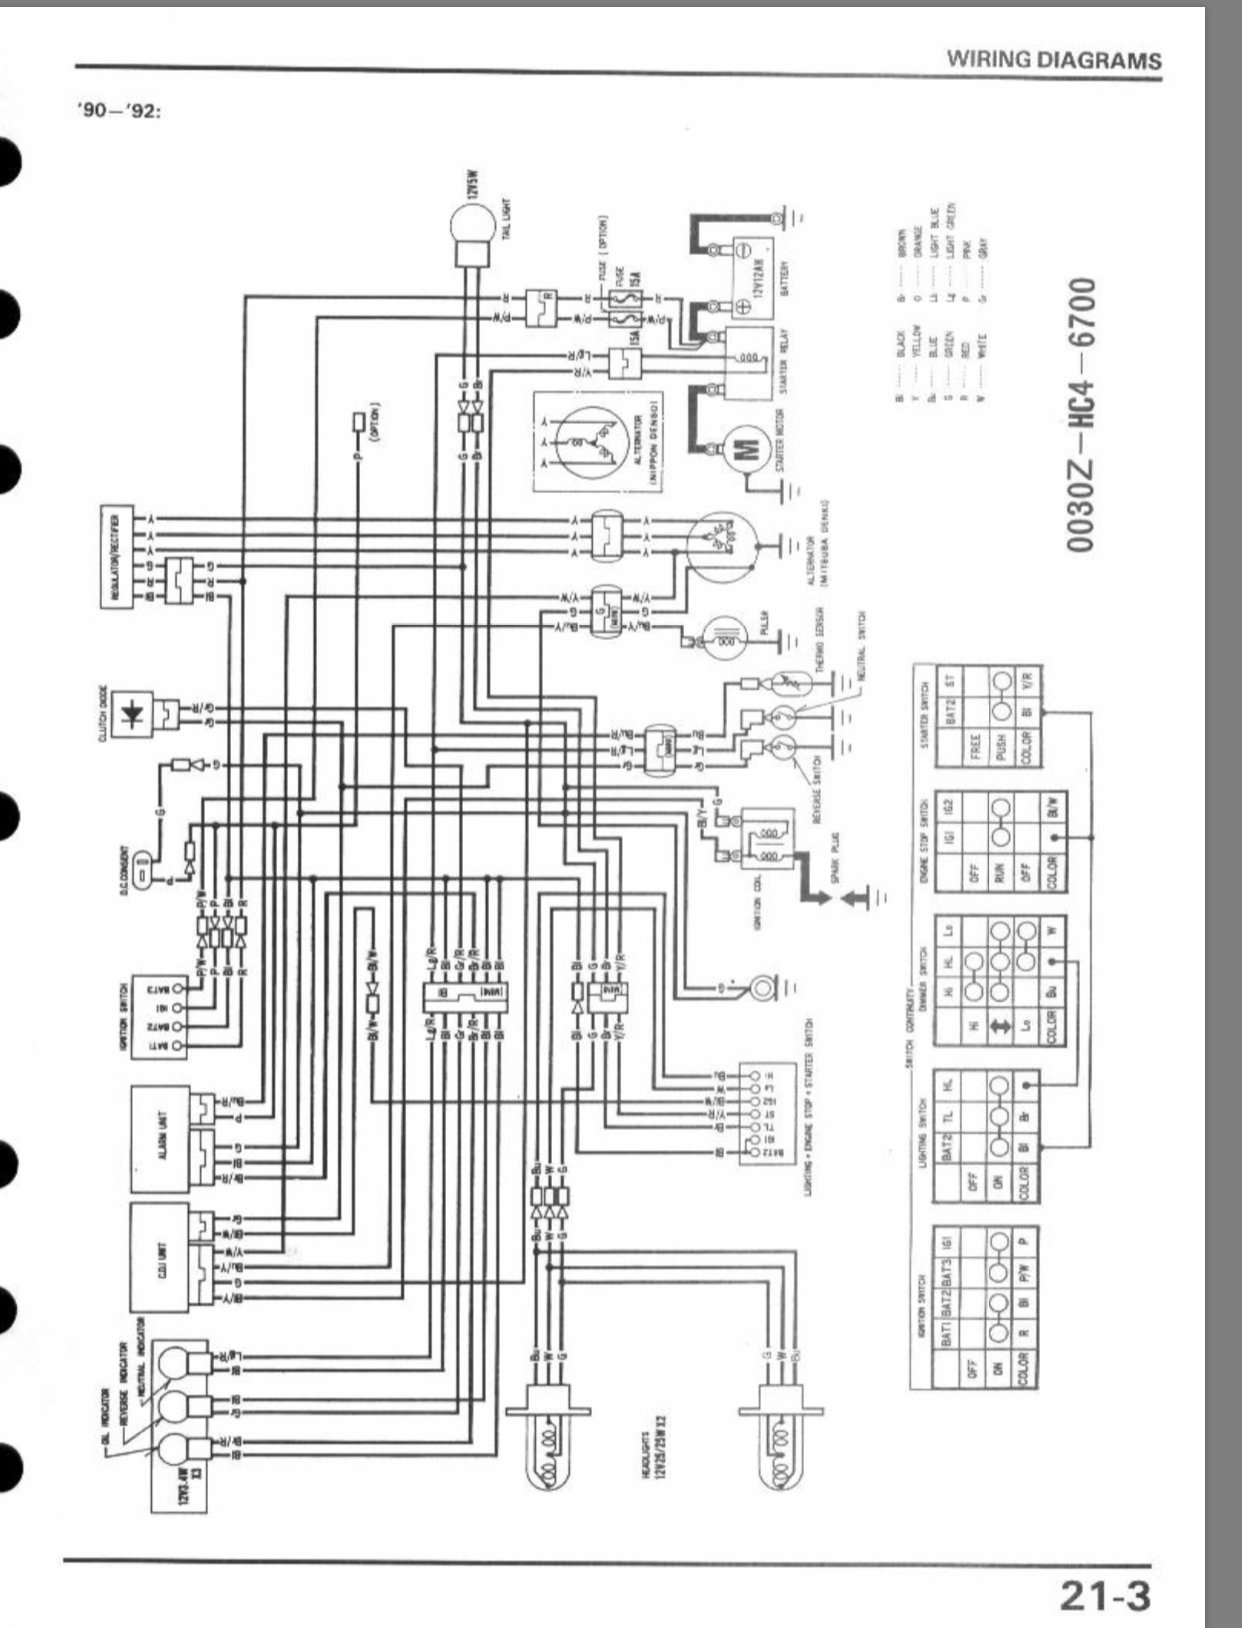 Wiring Diagram Ge Washer Whre5550K1Ww - Diagram 69 Pontiac Wiring Diagram  Full Version Hd Quality Wiring Diagram Skywiring Prolocomontefano It / In  various areas on this planet, wiring diagram ge washer whre5550k1ww   Ge Washer Wiring Diagram Mod Gtwn425od1ws      google maps get directions